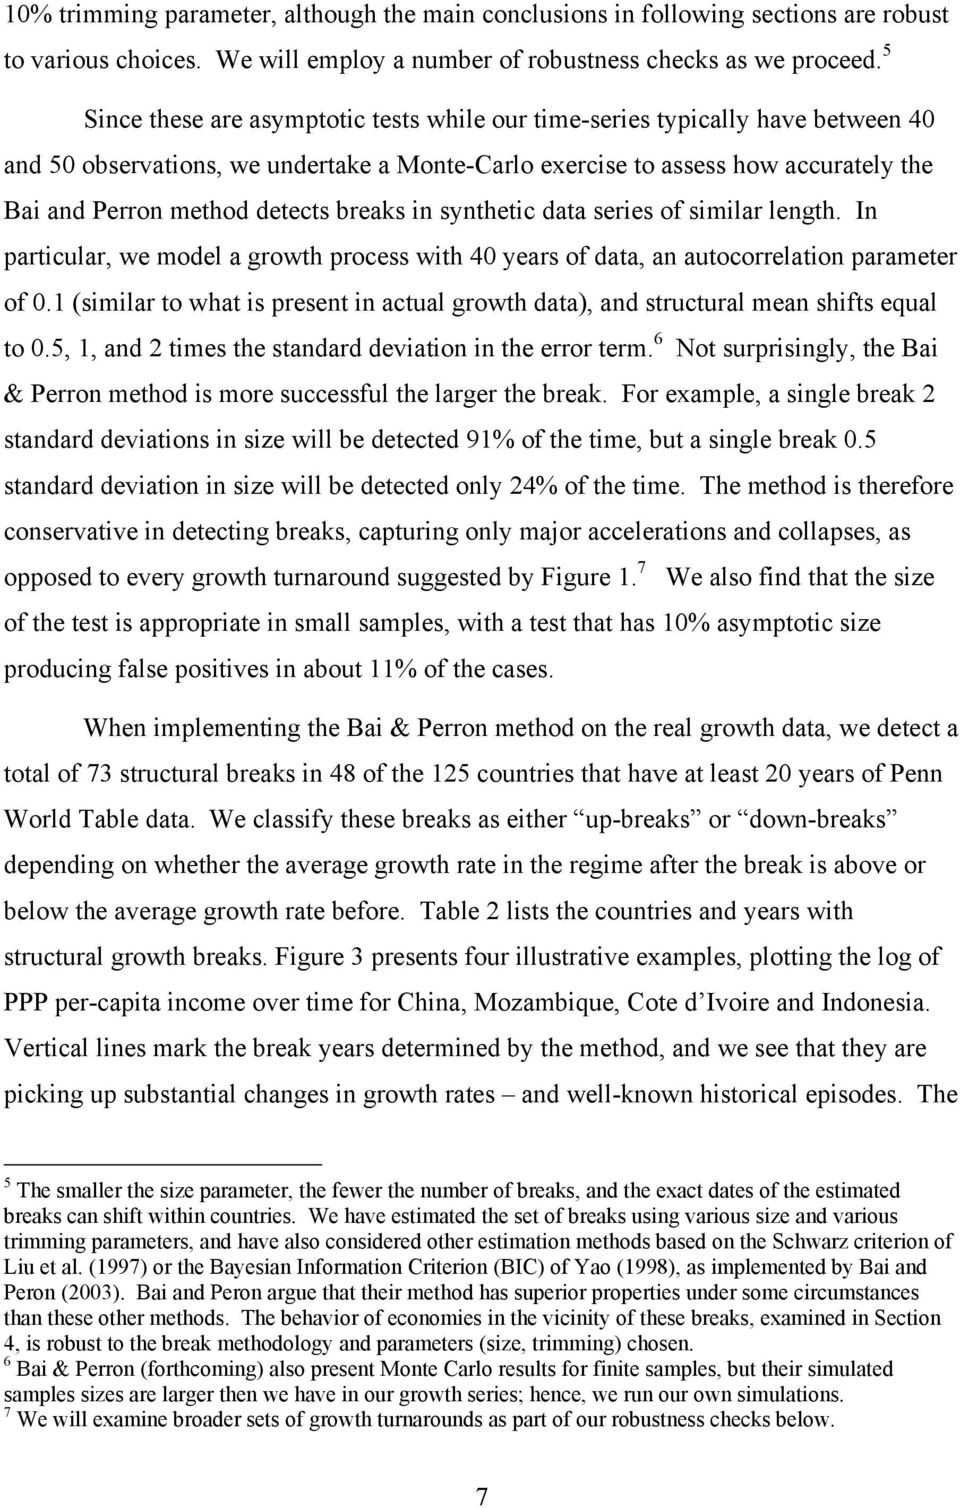 breaks in synthetic data series of similar length. In particular, we model a growth process with 40 years of data, an autocorrelation parameter of 0.